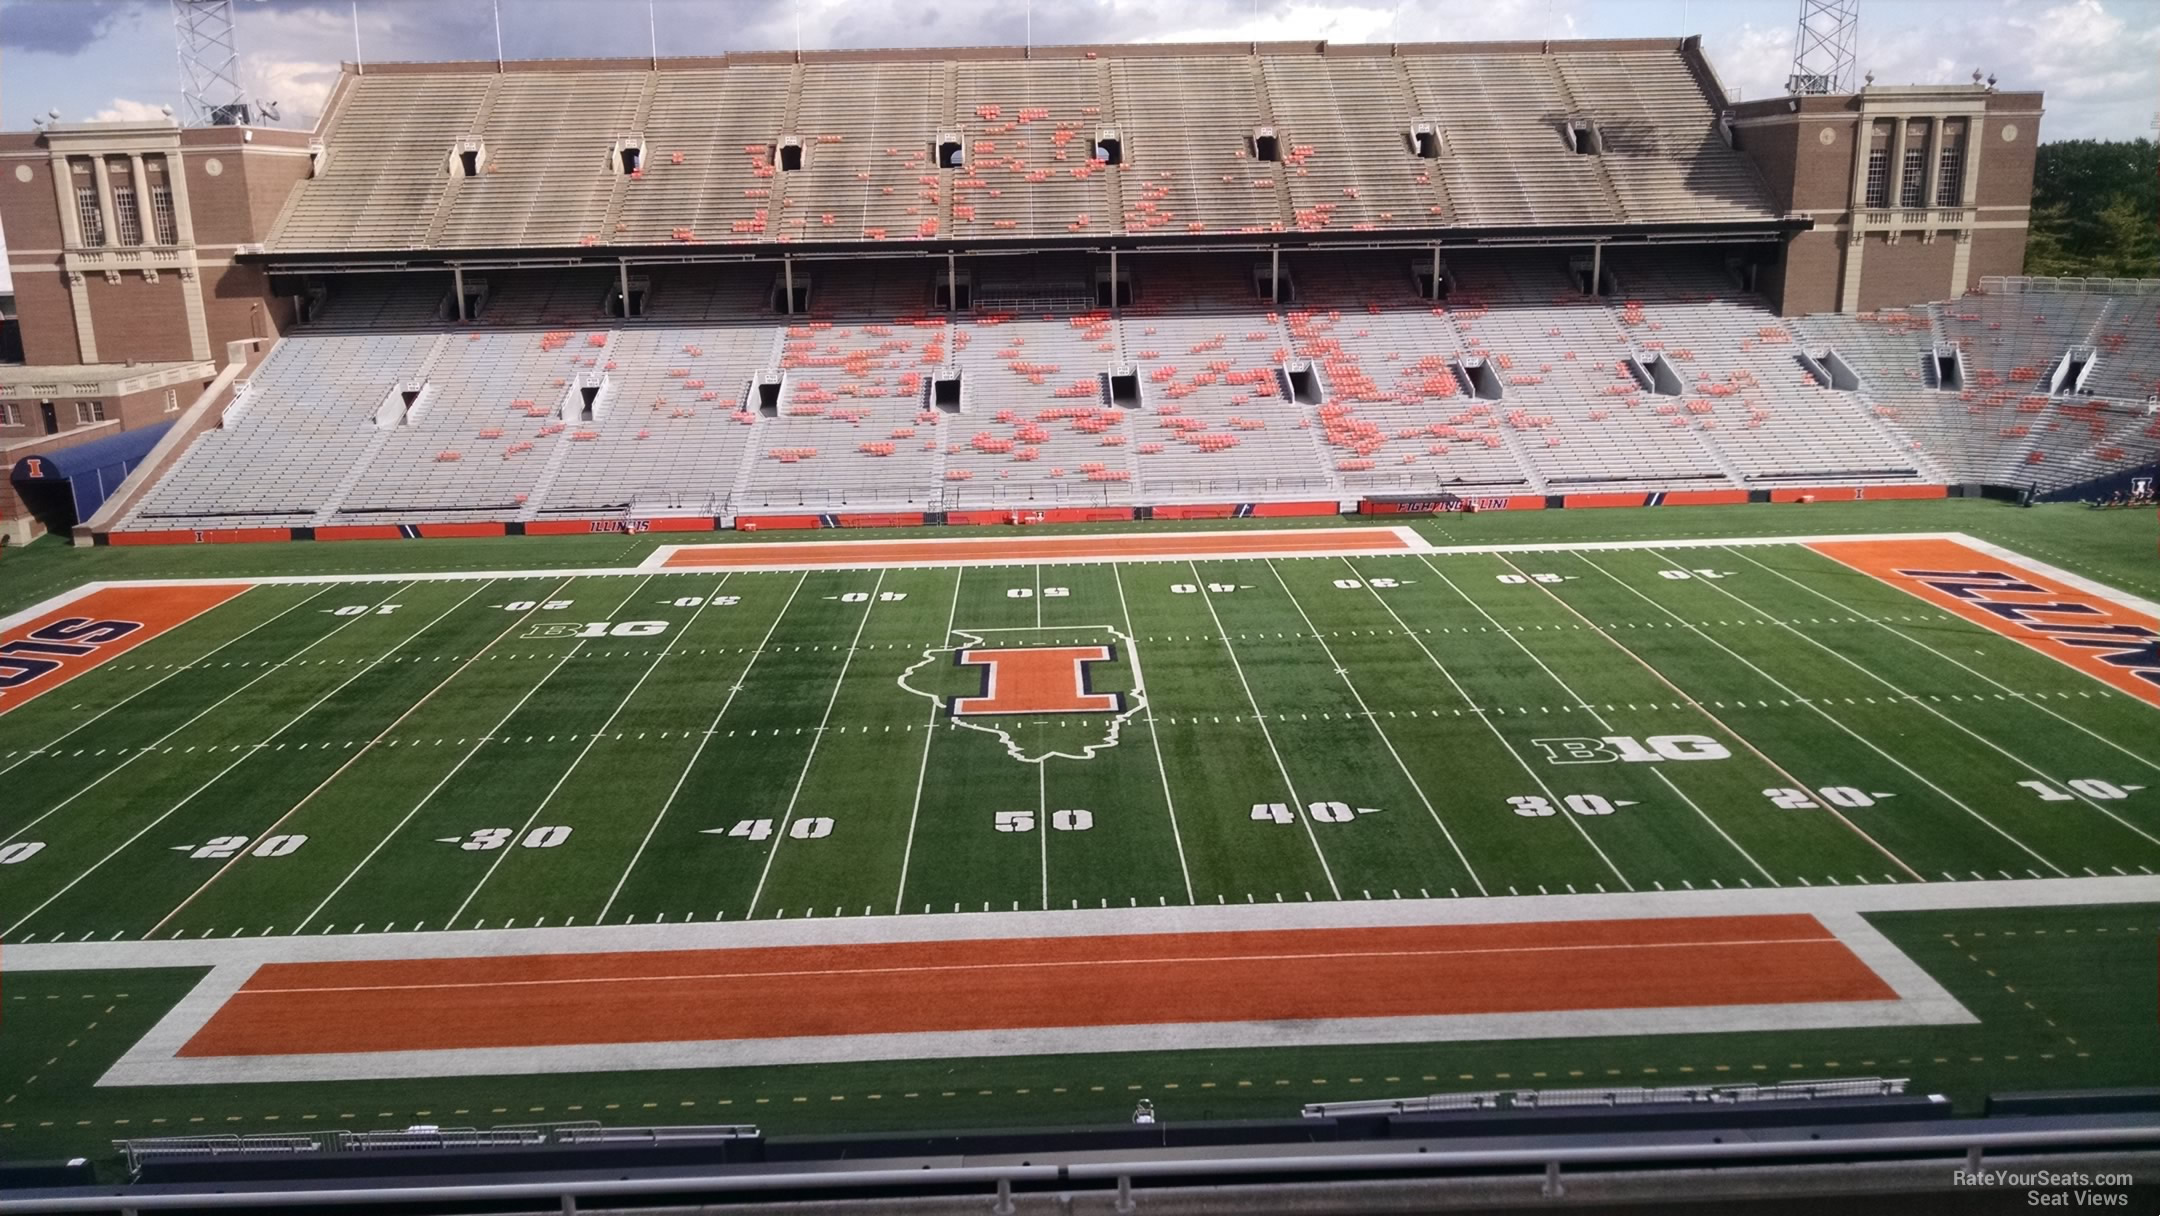 Seat View for Memorial Stadium - IL Section 227, Row 8